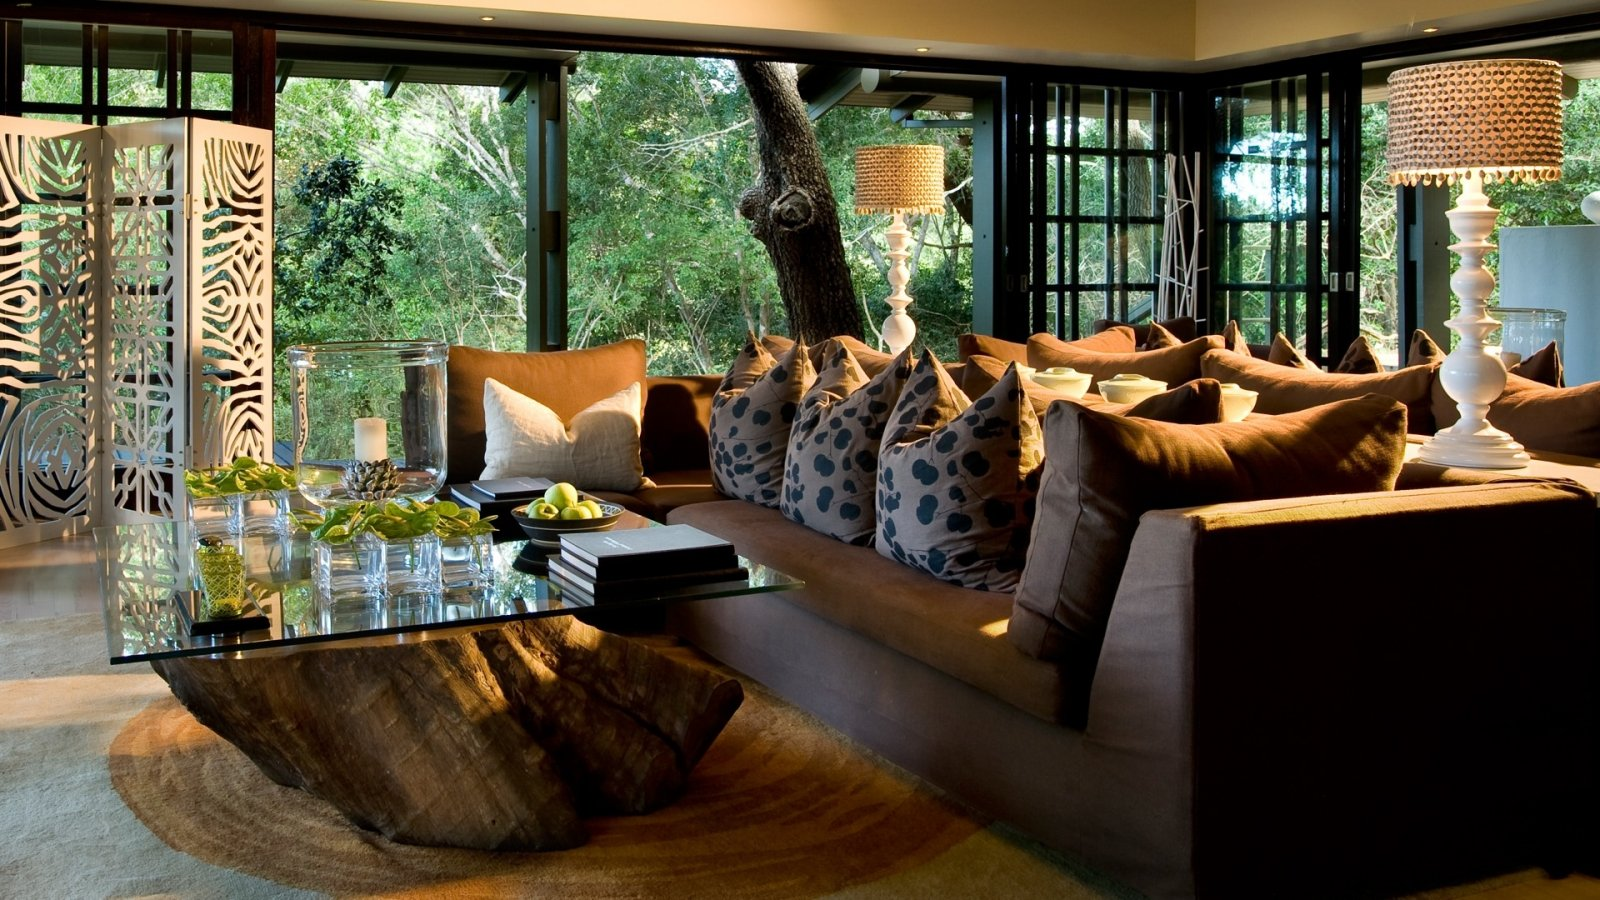 guest-area-at-andbeyond-phinda-forest-lodge-on-a-luxury-safari-in-south-africa.jpg